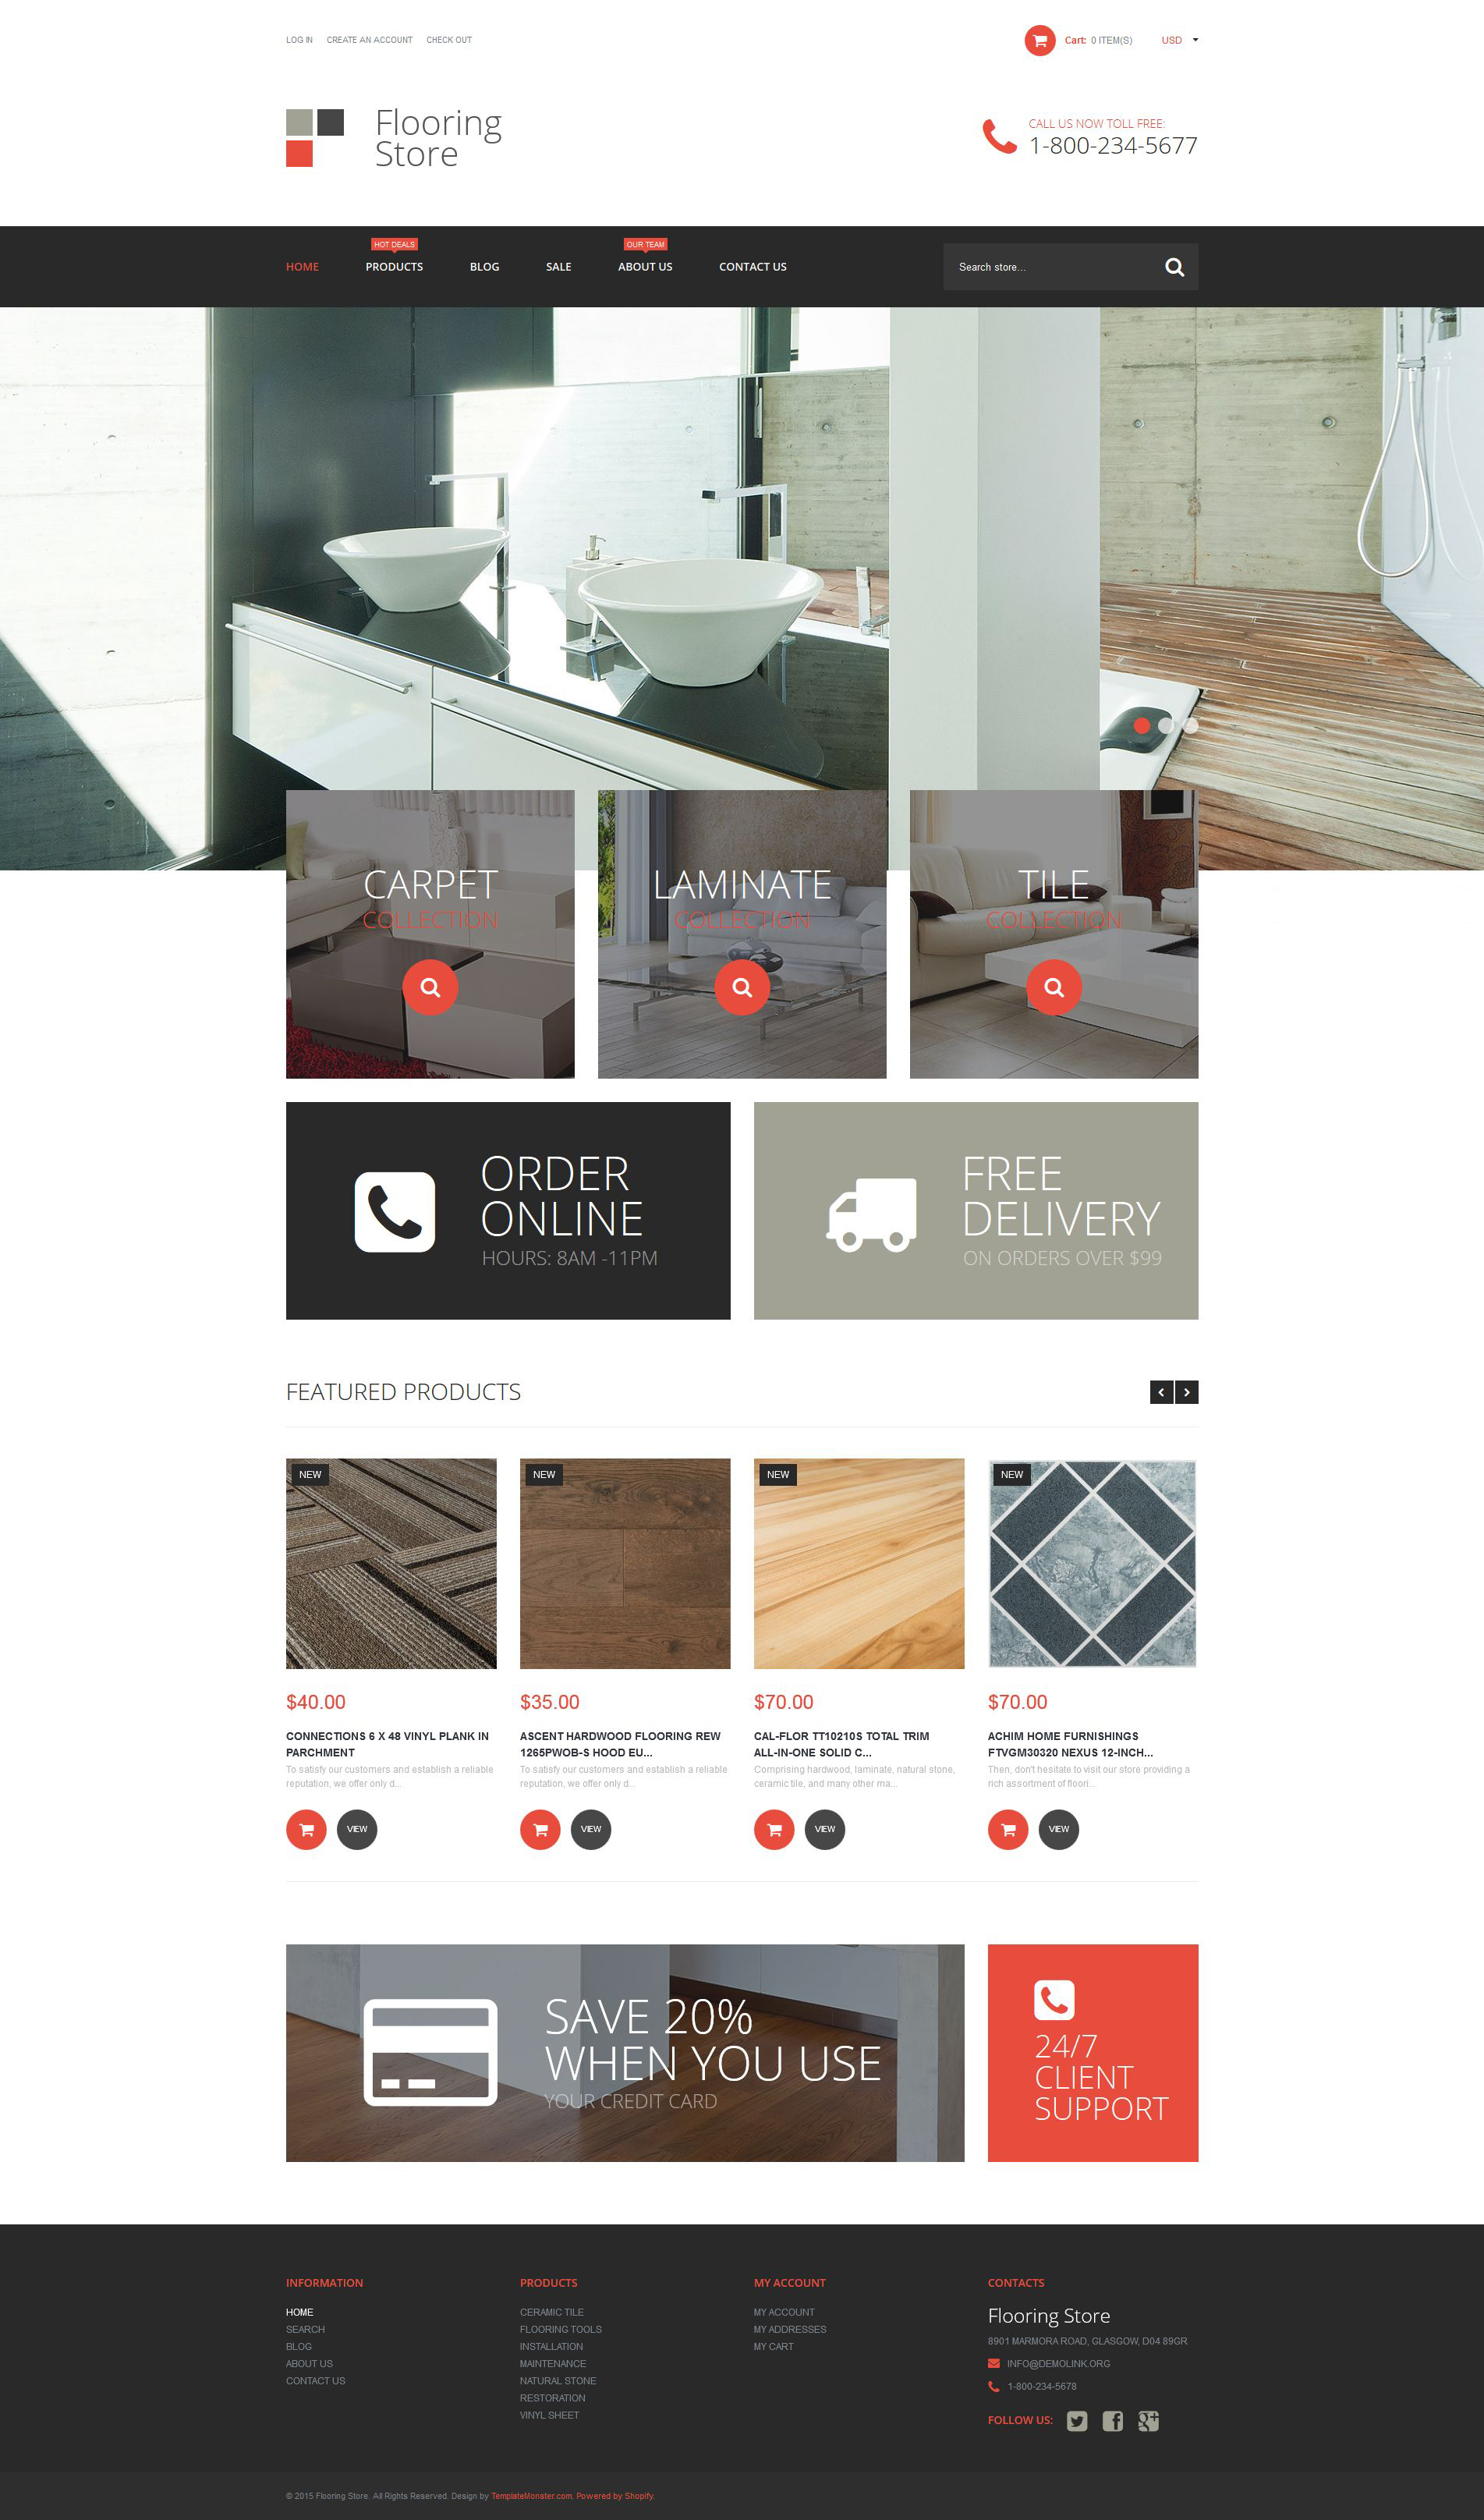 The Floor Flooring Online Store Shopify Design 53192, one of the best Shopify themes of its kind (interior & furniture, most popular), also known as floor flooring online store Shopify template, shop Shopify template, laminat Shopify template, wood Shopify template, carpet Shopify template, area Shopify template, rugs Shopify template, cork Shopify template, overhaul Shopify template, maintenance Shopify template, shopping cart and related with floor flooring online store, shop, laminat, wood, carpet, area, rugs, cork, overhaul, maintenance, shopping cart, etc.